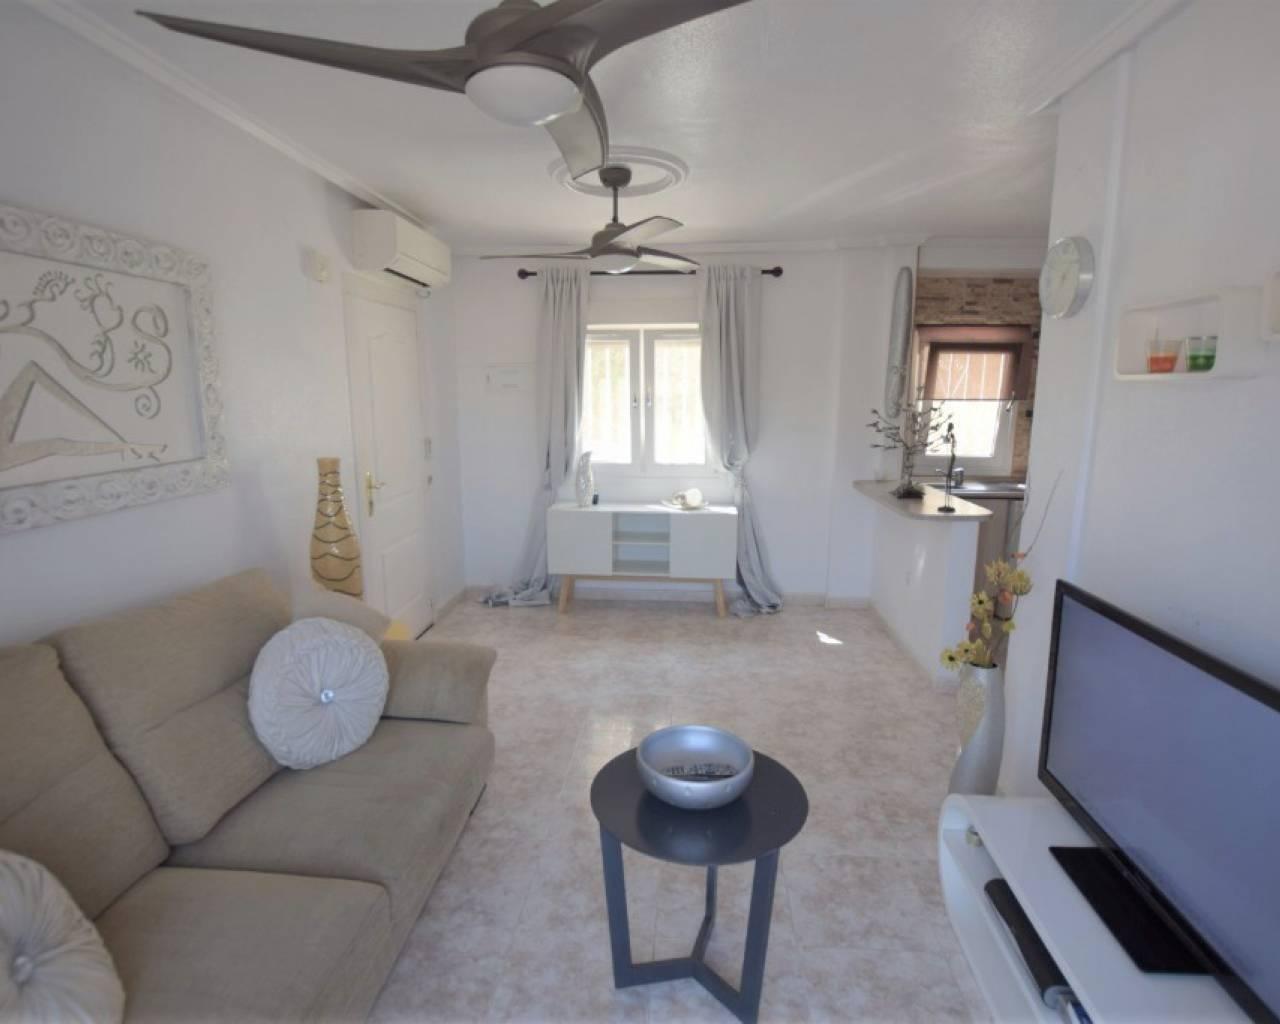 Revente - Appartement - Ciudad Quesada - La Marquesa Golf